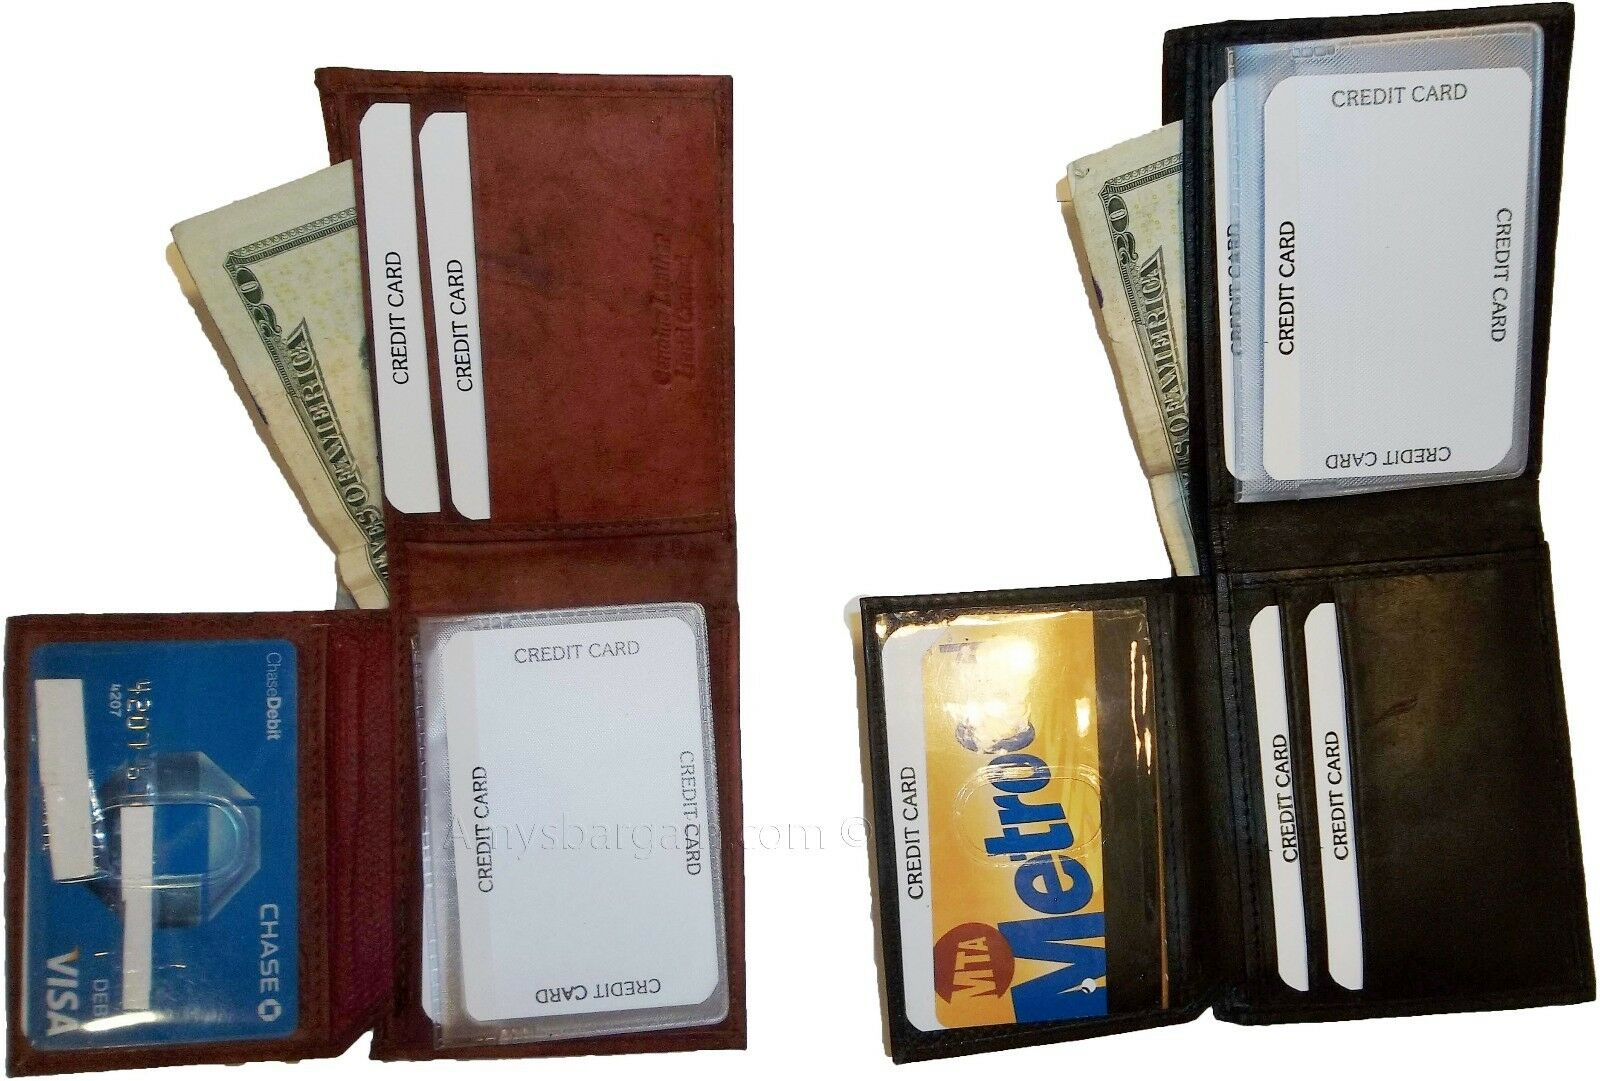 2 New style leather man's wallet 2 suede lined billfolds 1 zip 4 credits card ID